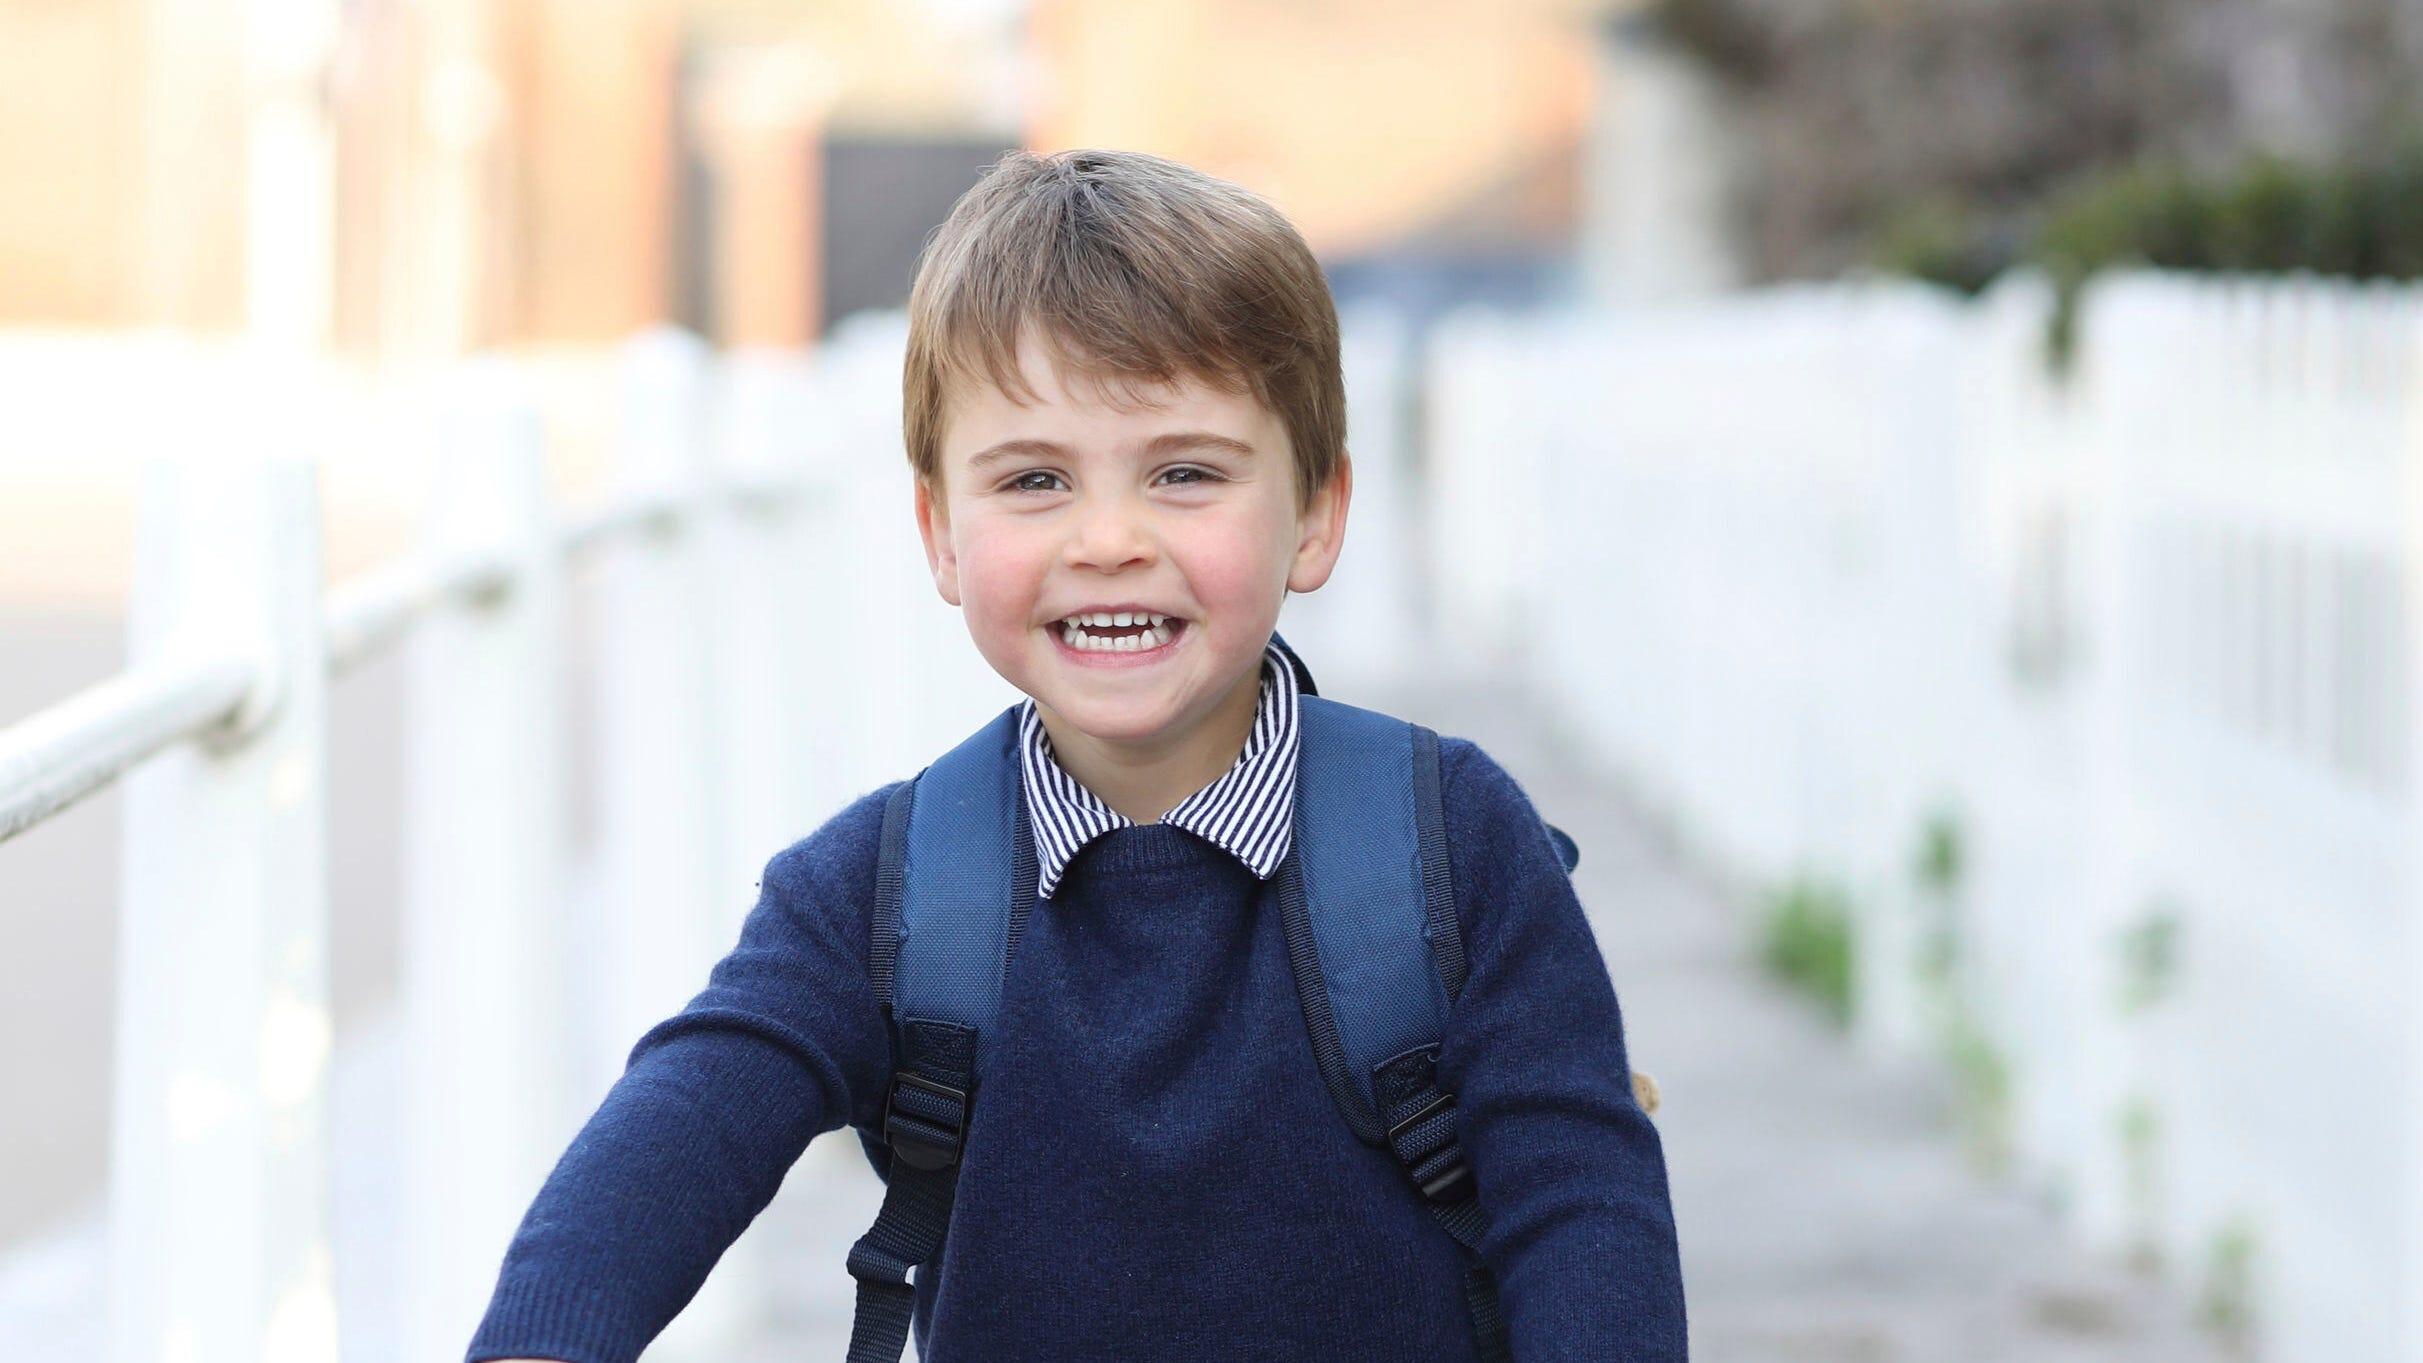 Prince Louis turns 3! Duchess Kate shares new birthday photo of the youngest Cambridge